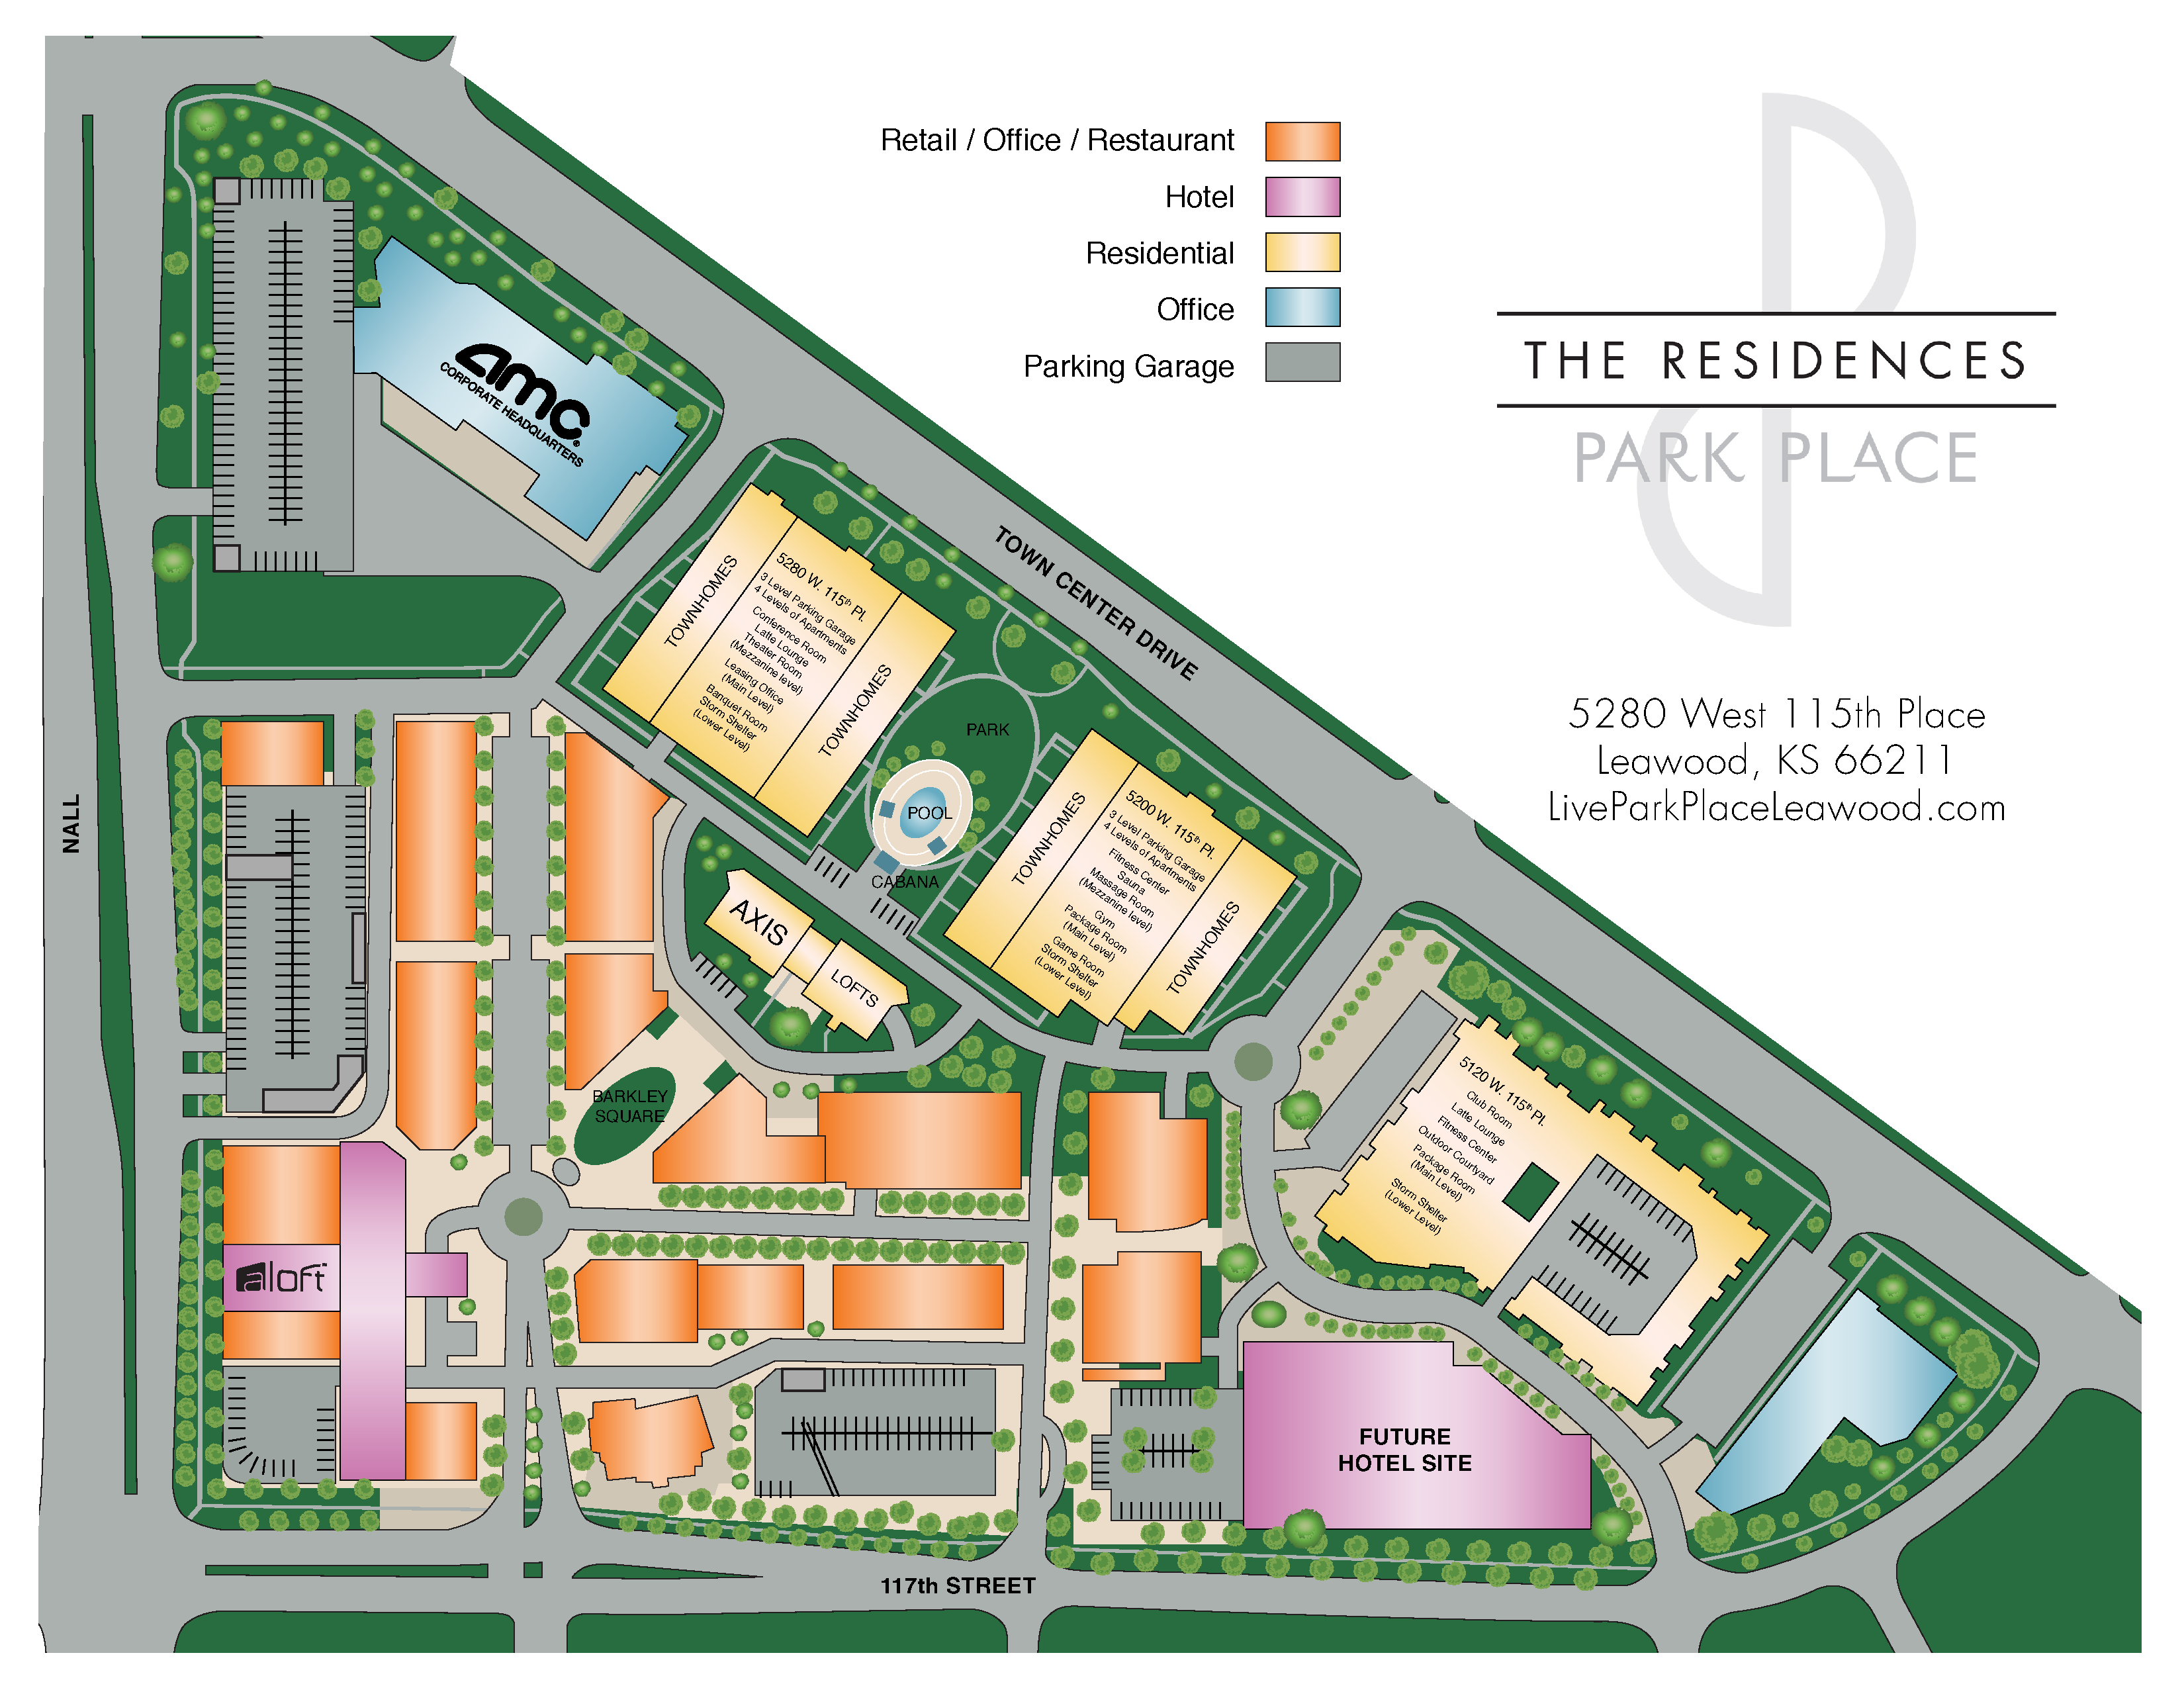 The Residences at Park Place Property Map